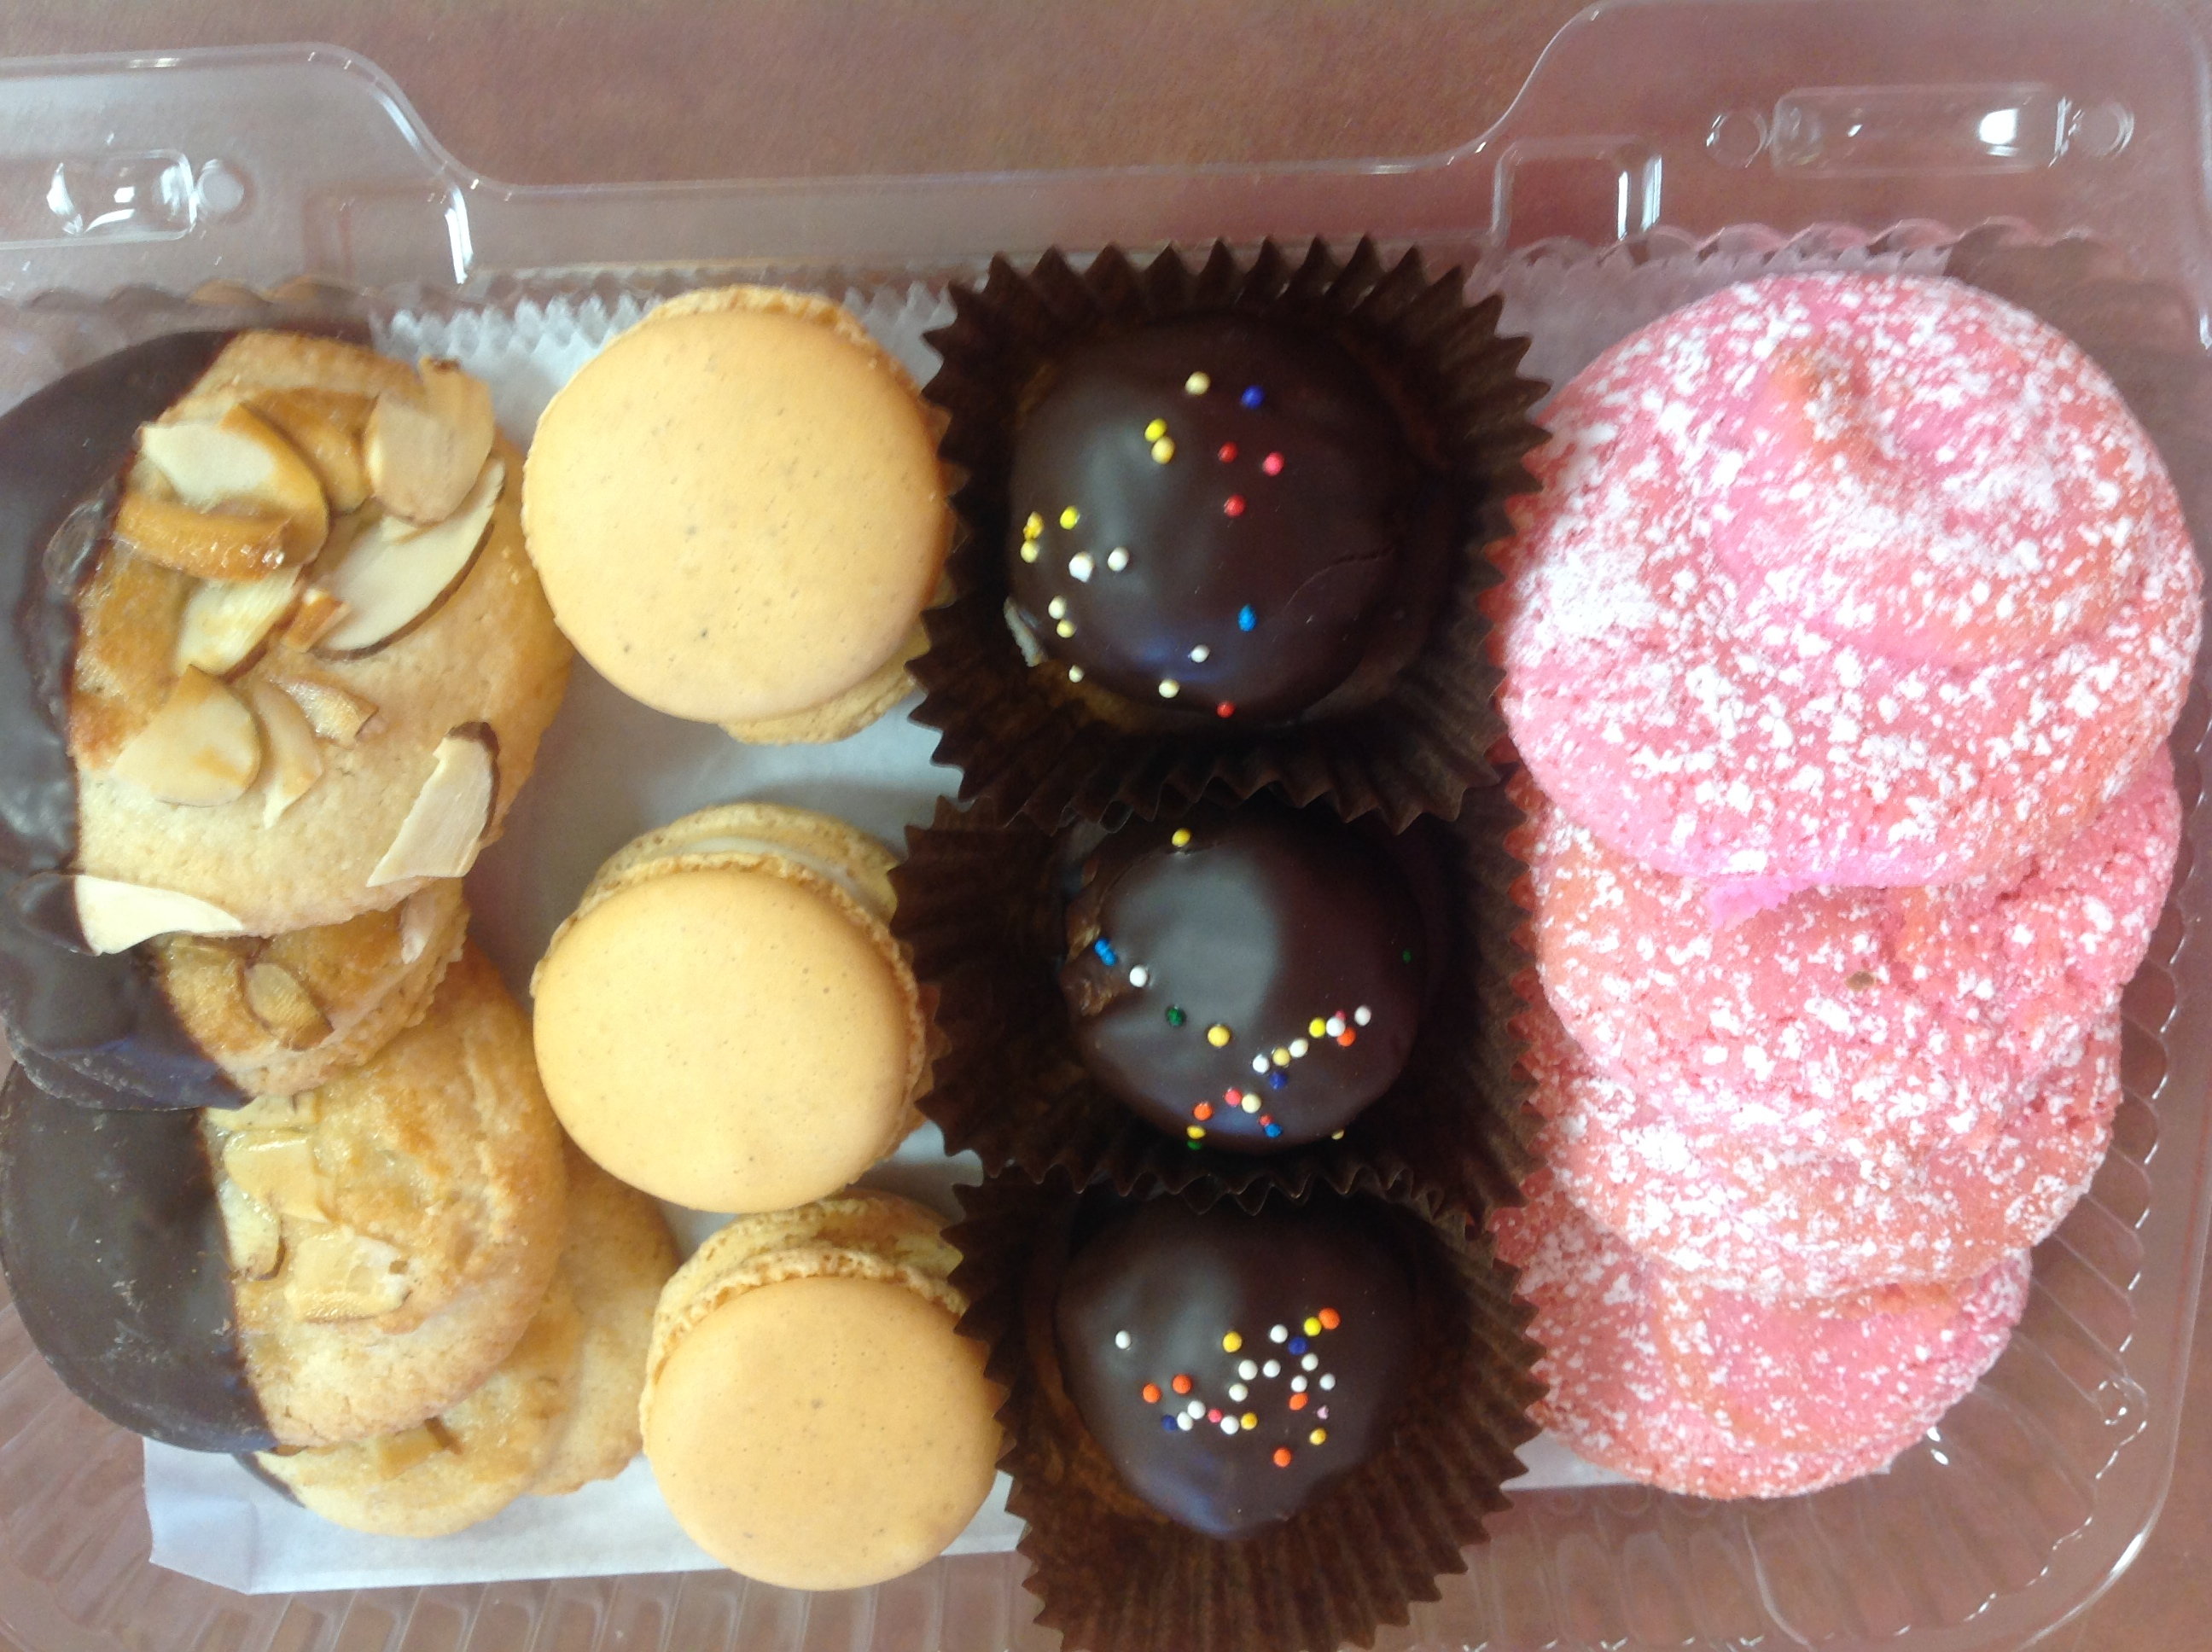 Gluten Free Pastries and Cookies at Dolce and Biscotti Italian Bakery